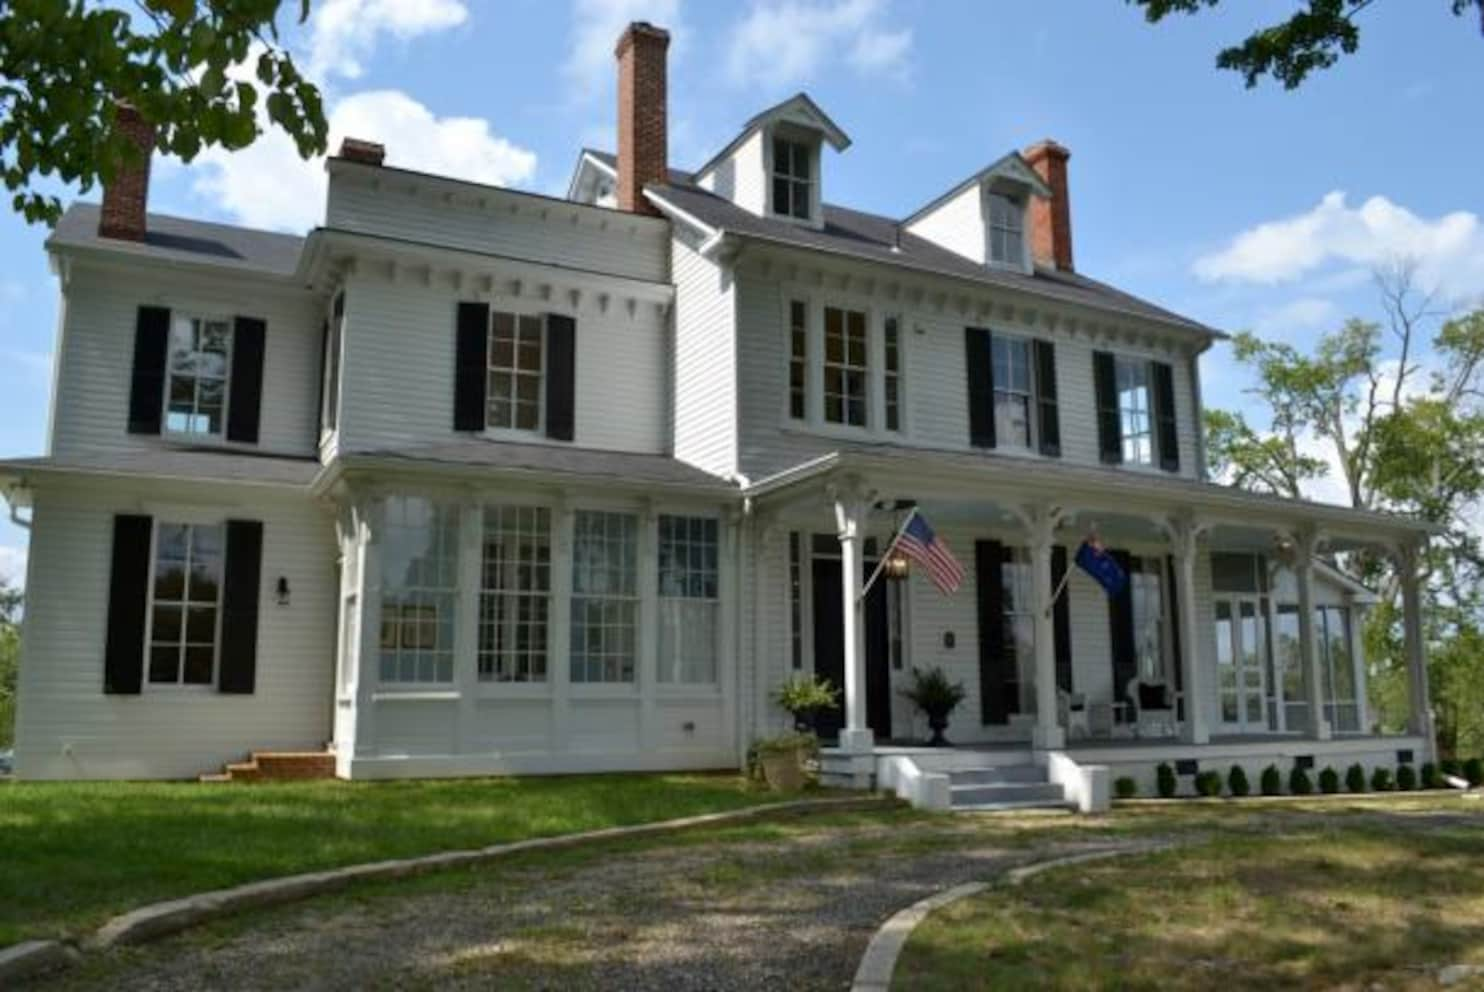 Italianate Farmhouse The 10 Best Entries In The Historic Home Contest The Washington Post